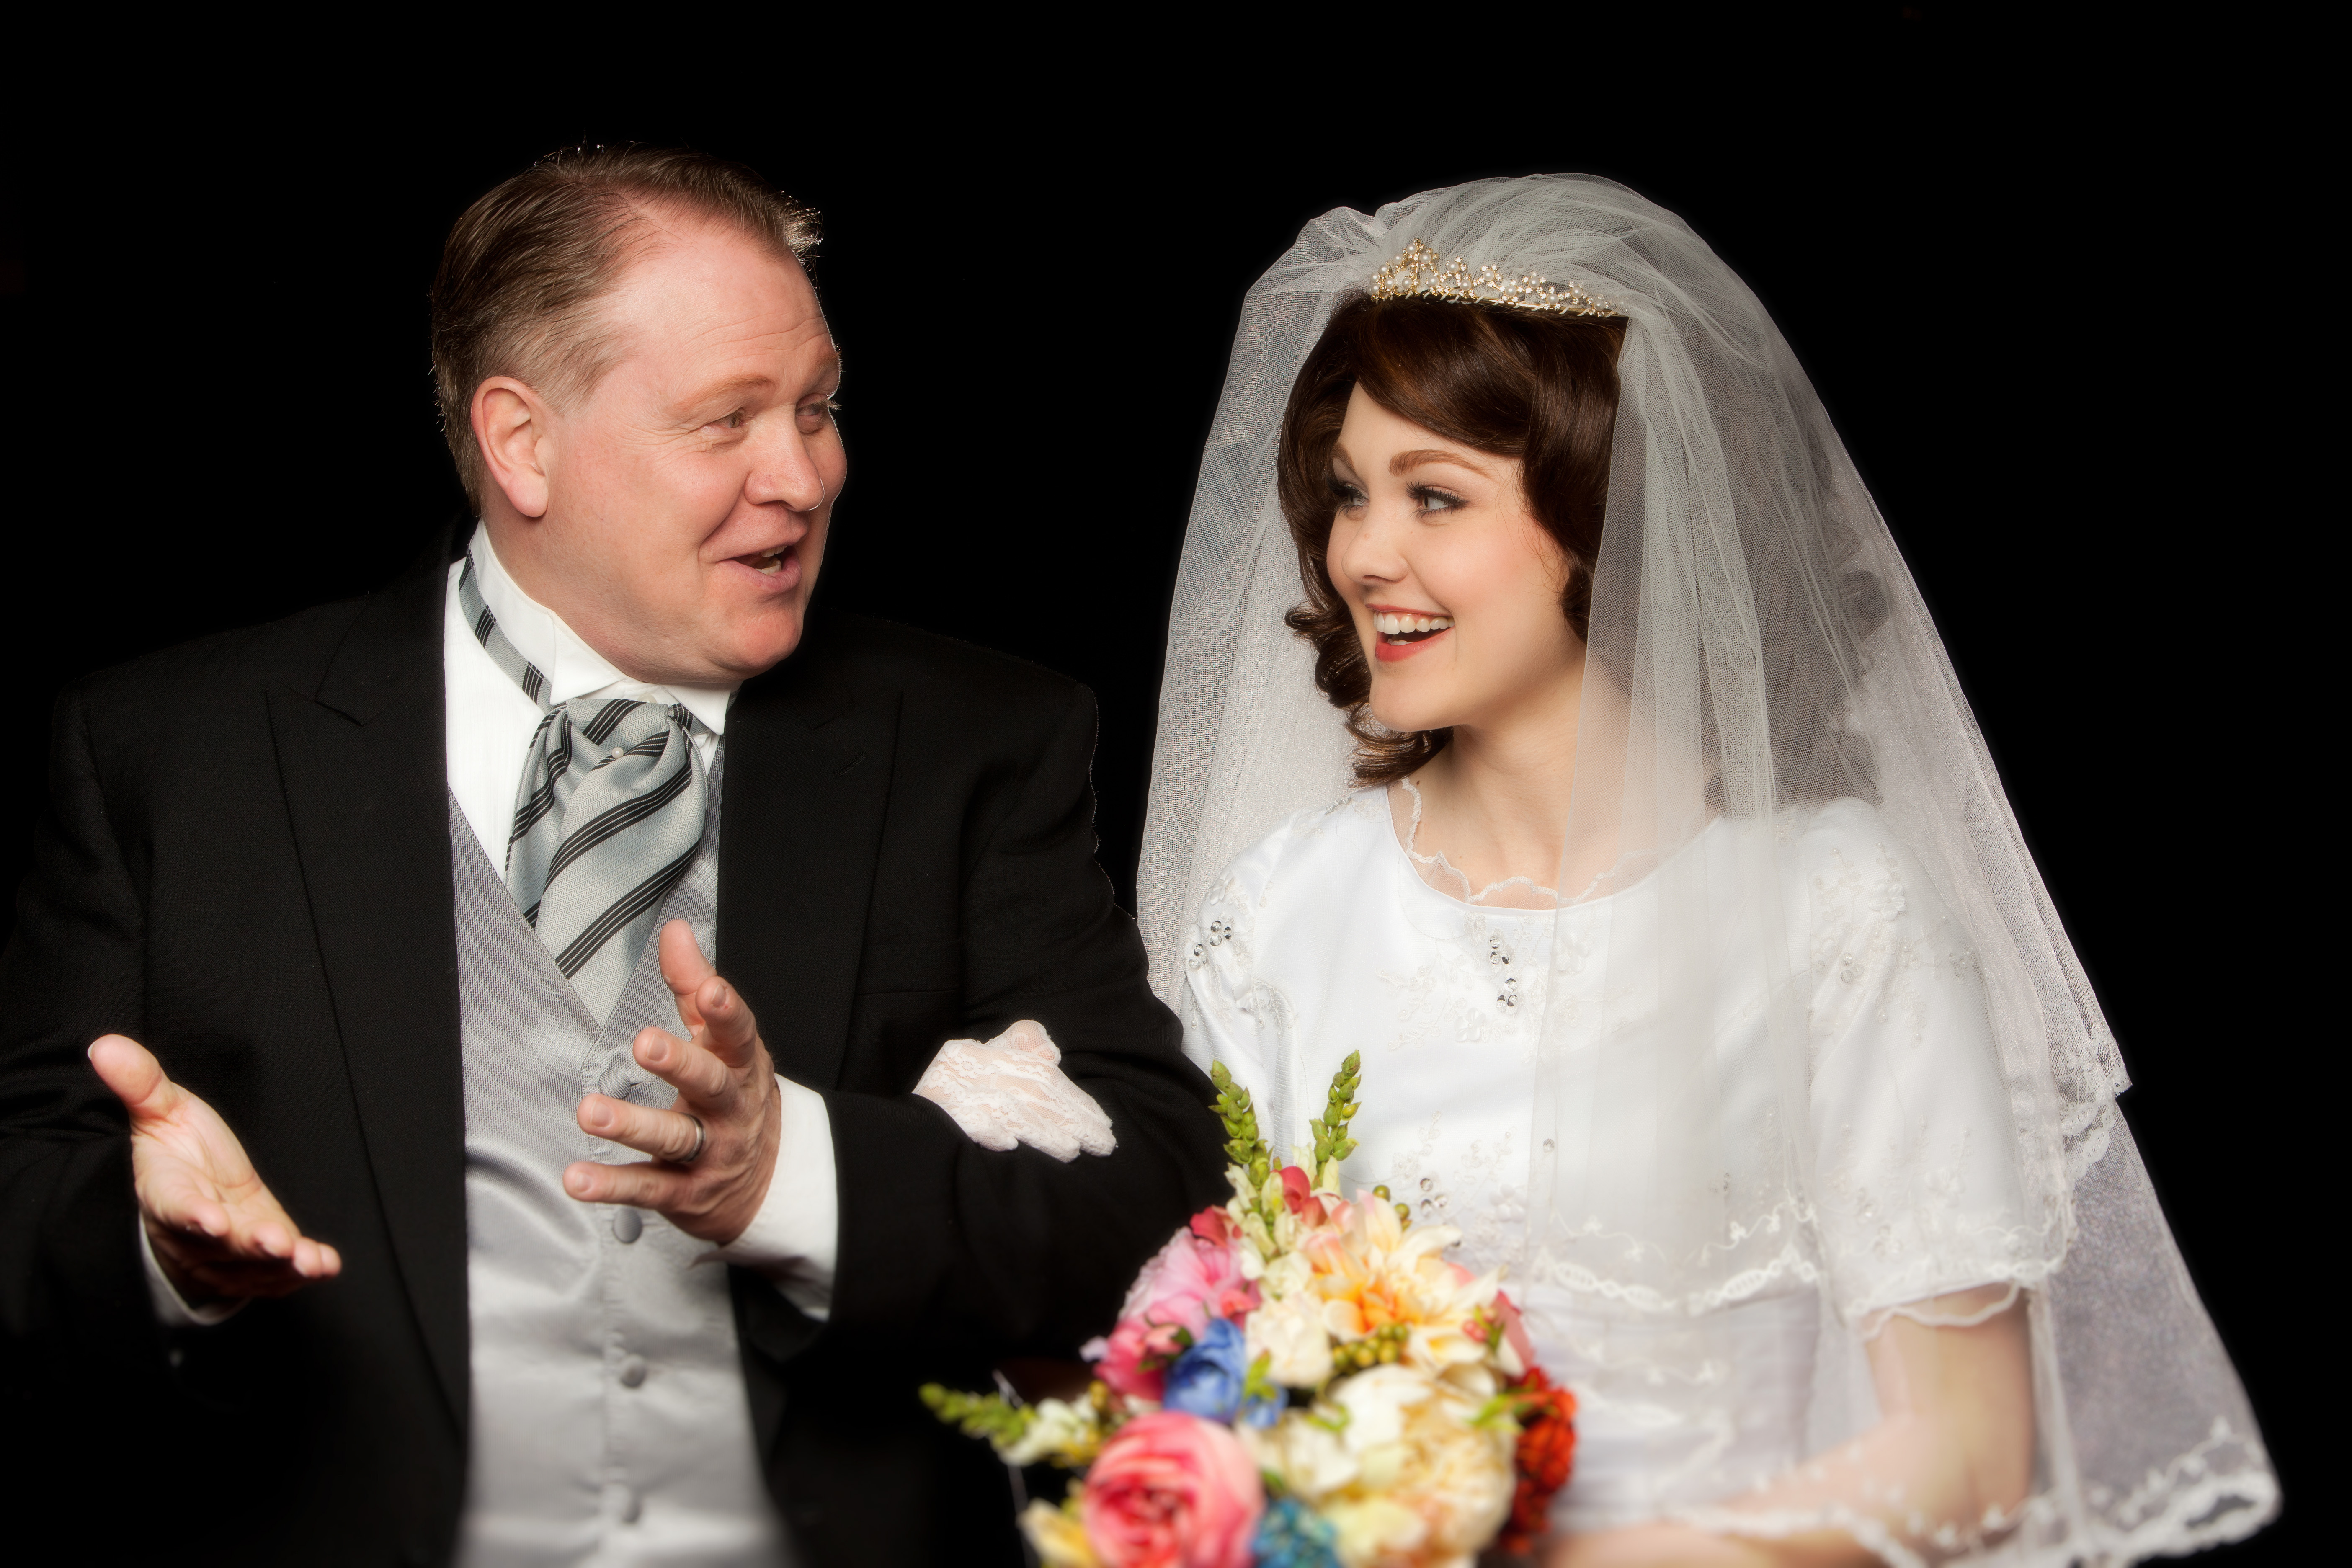 FATHER OF THE BRIDE gets lukewarm reception at HCT